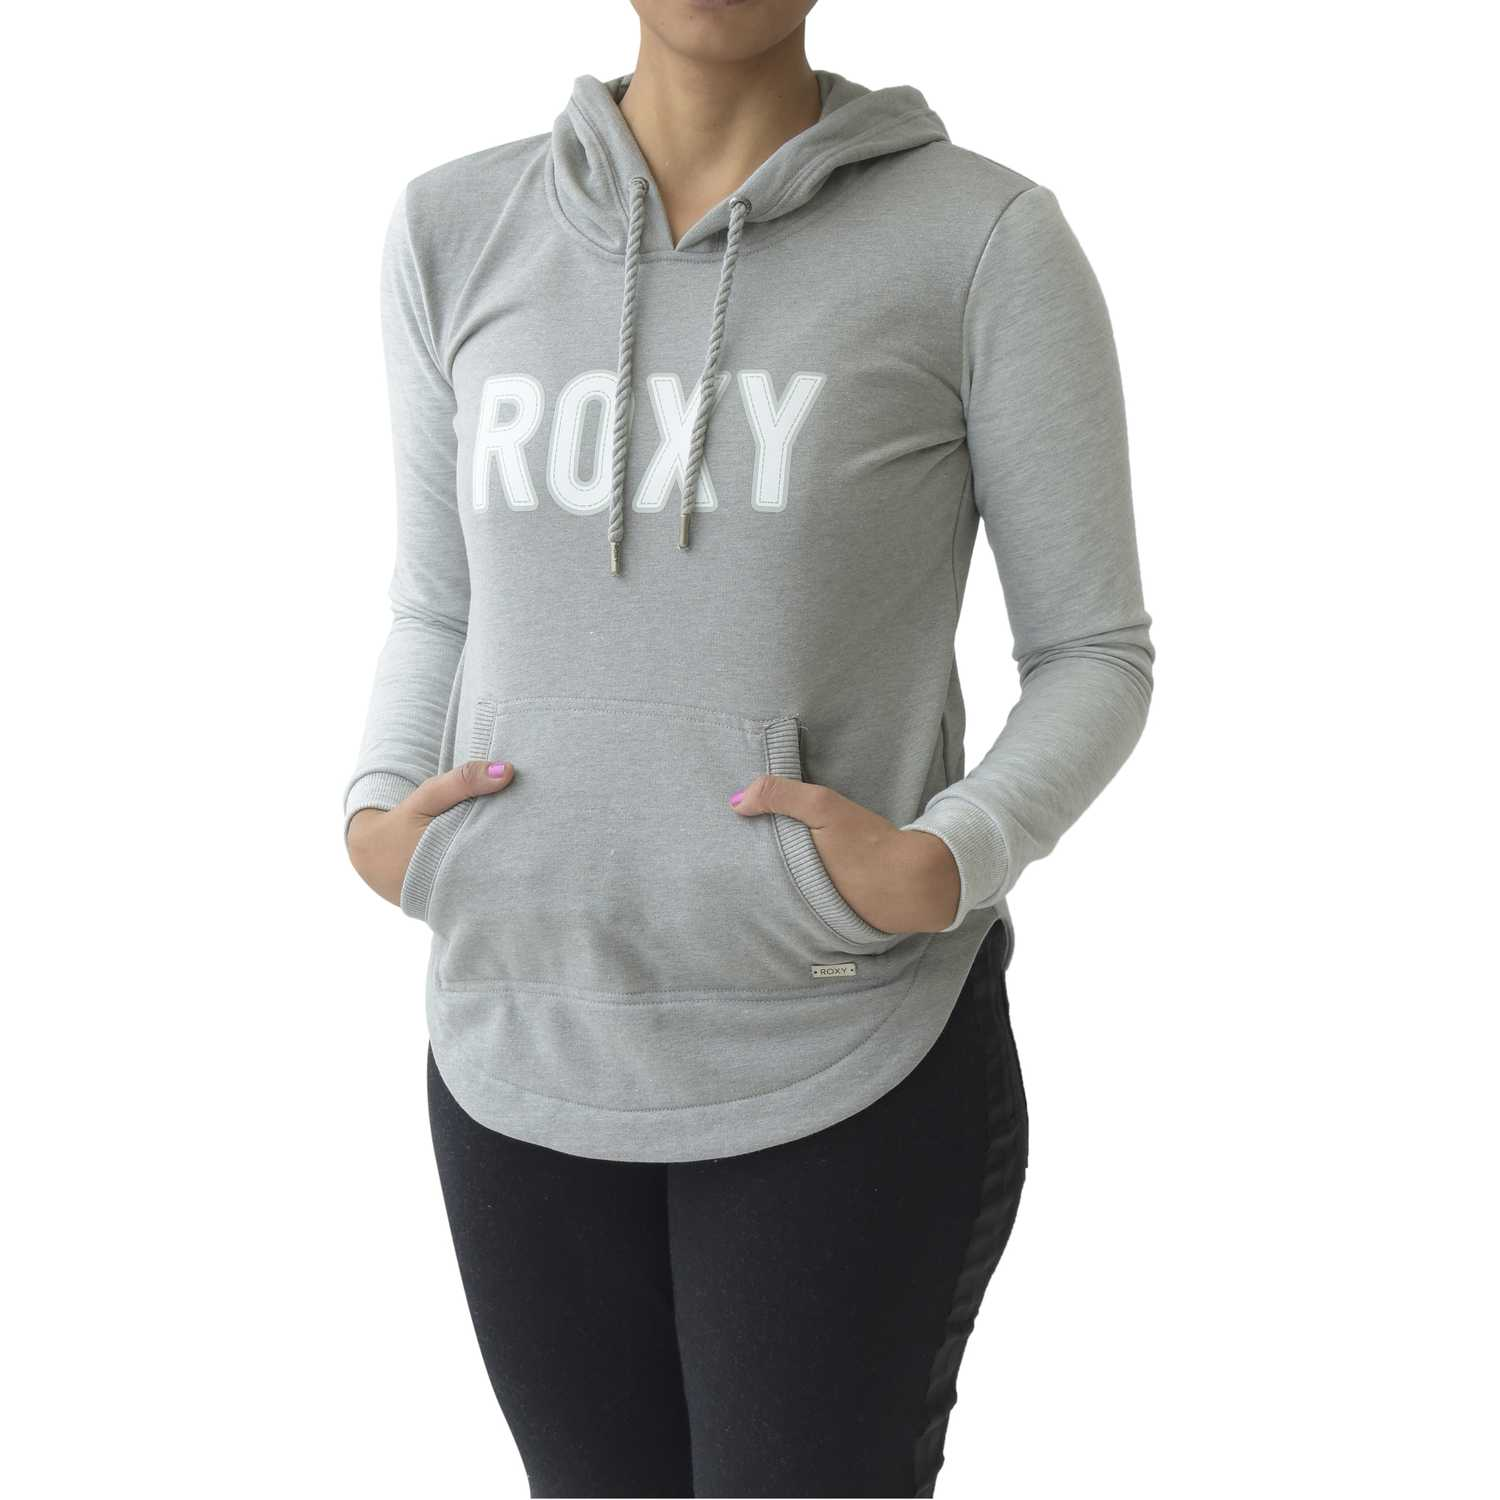 Polera de Mujer Roxy Gris / blanco all same days